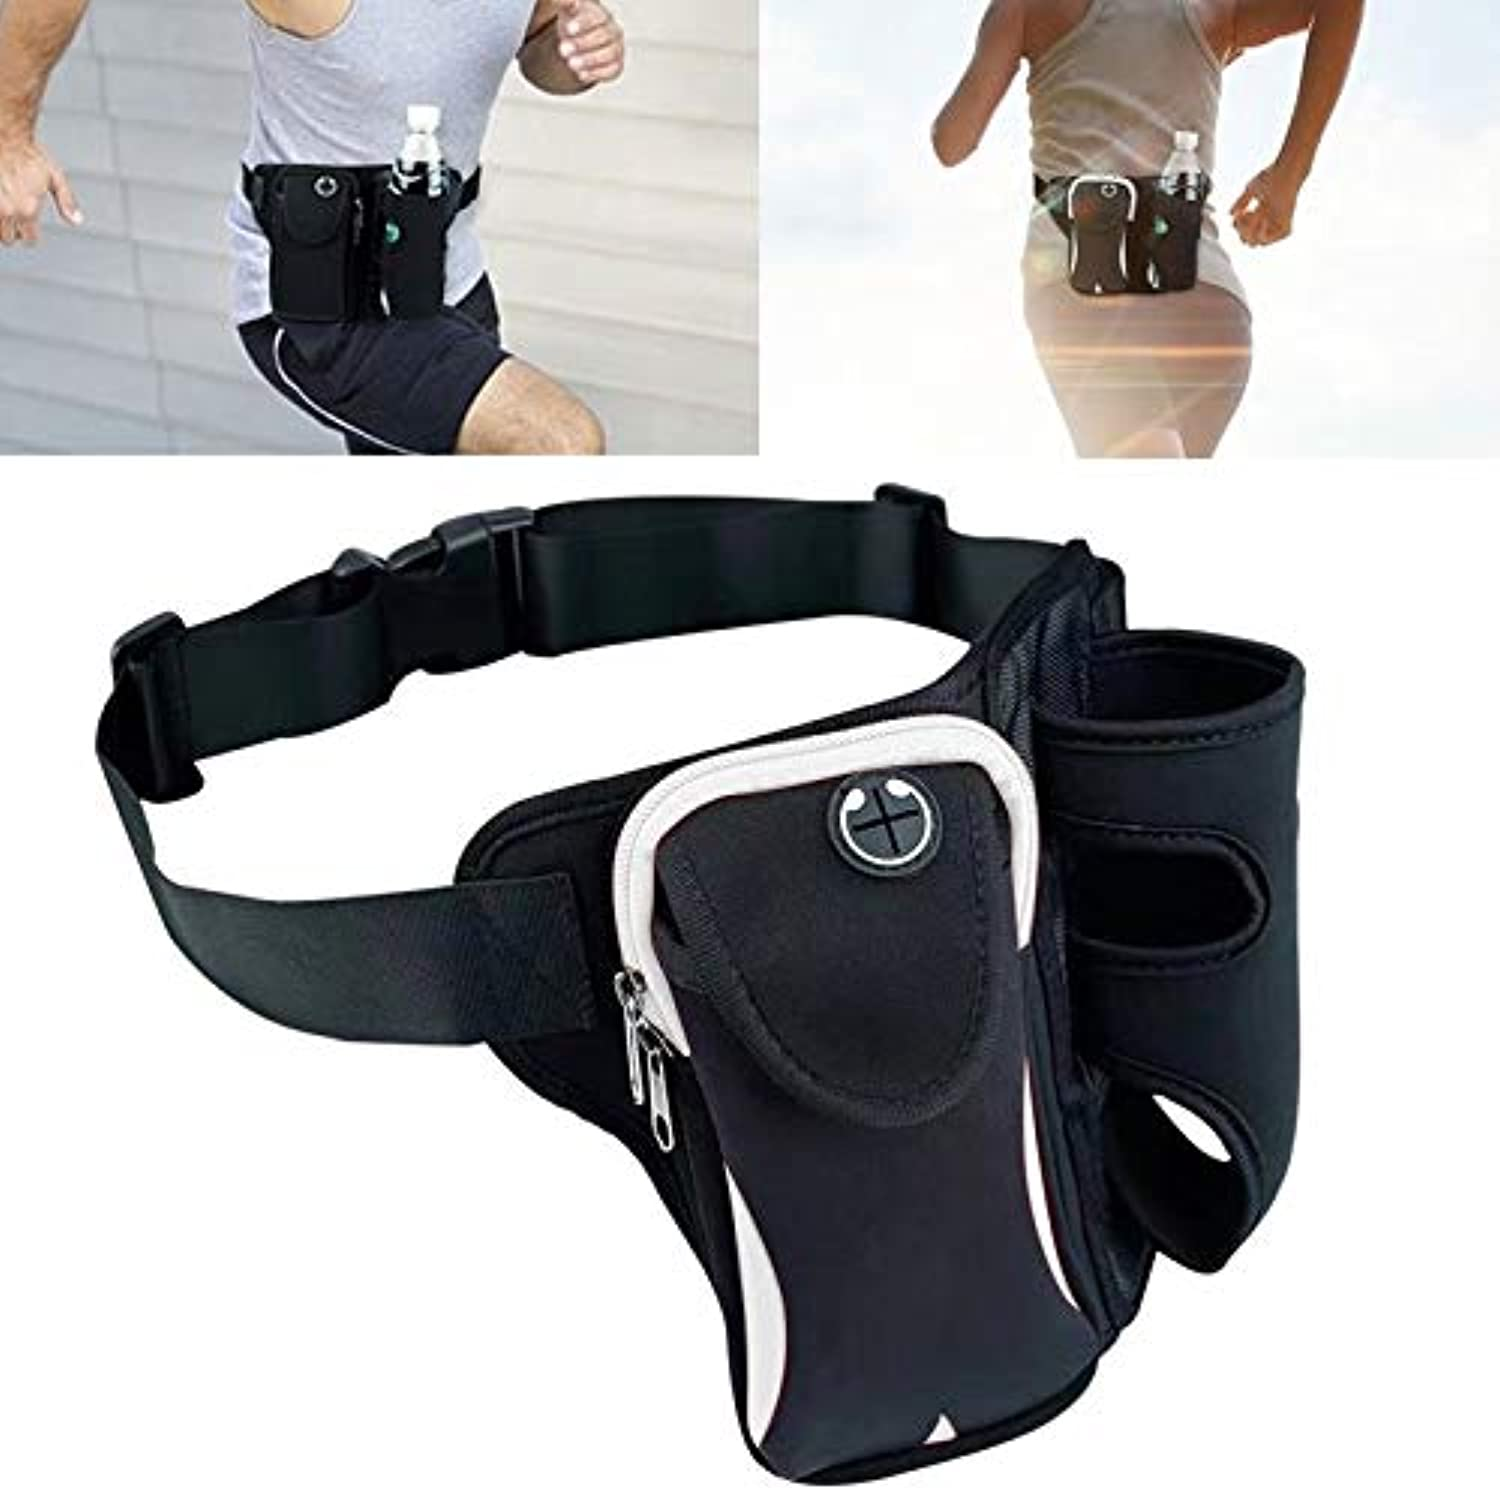 Vacation Simple MultiFunctional Unisex Running Outdoor Sports Water Bottle Waist Bag Convenient (color   Grey)